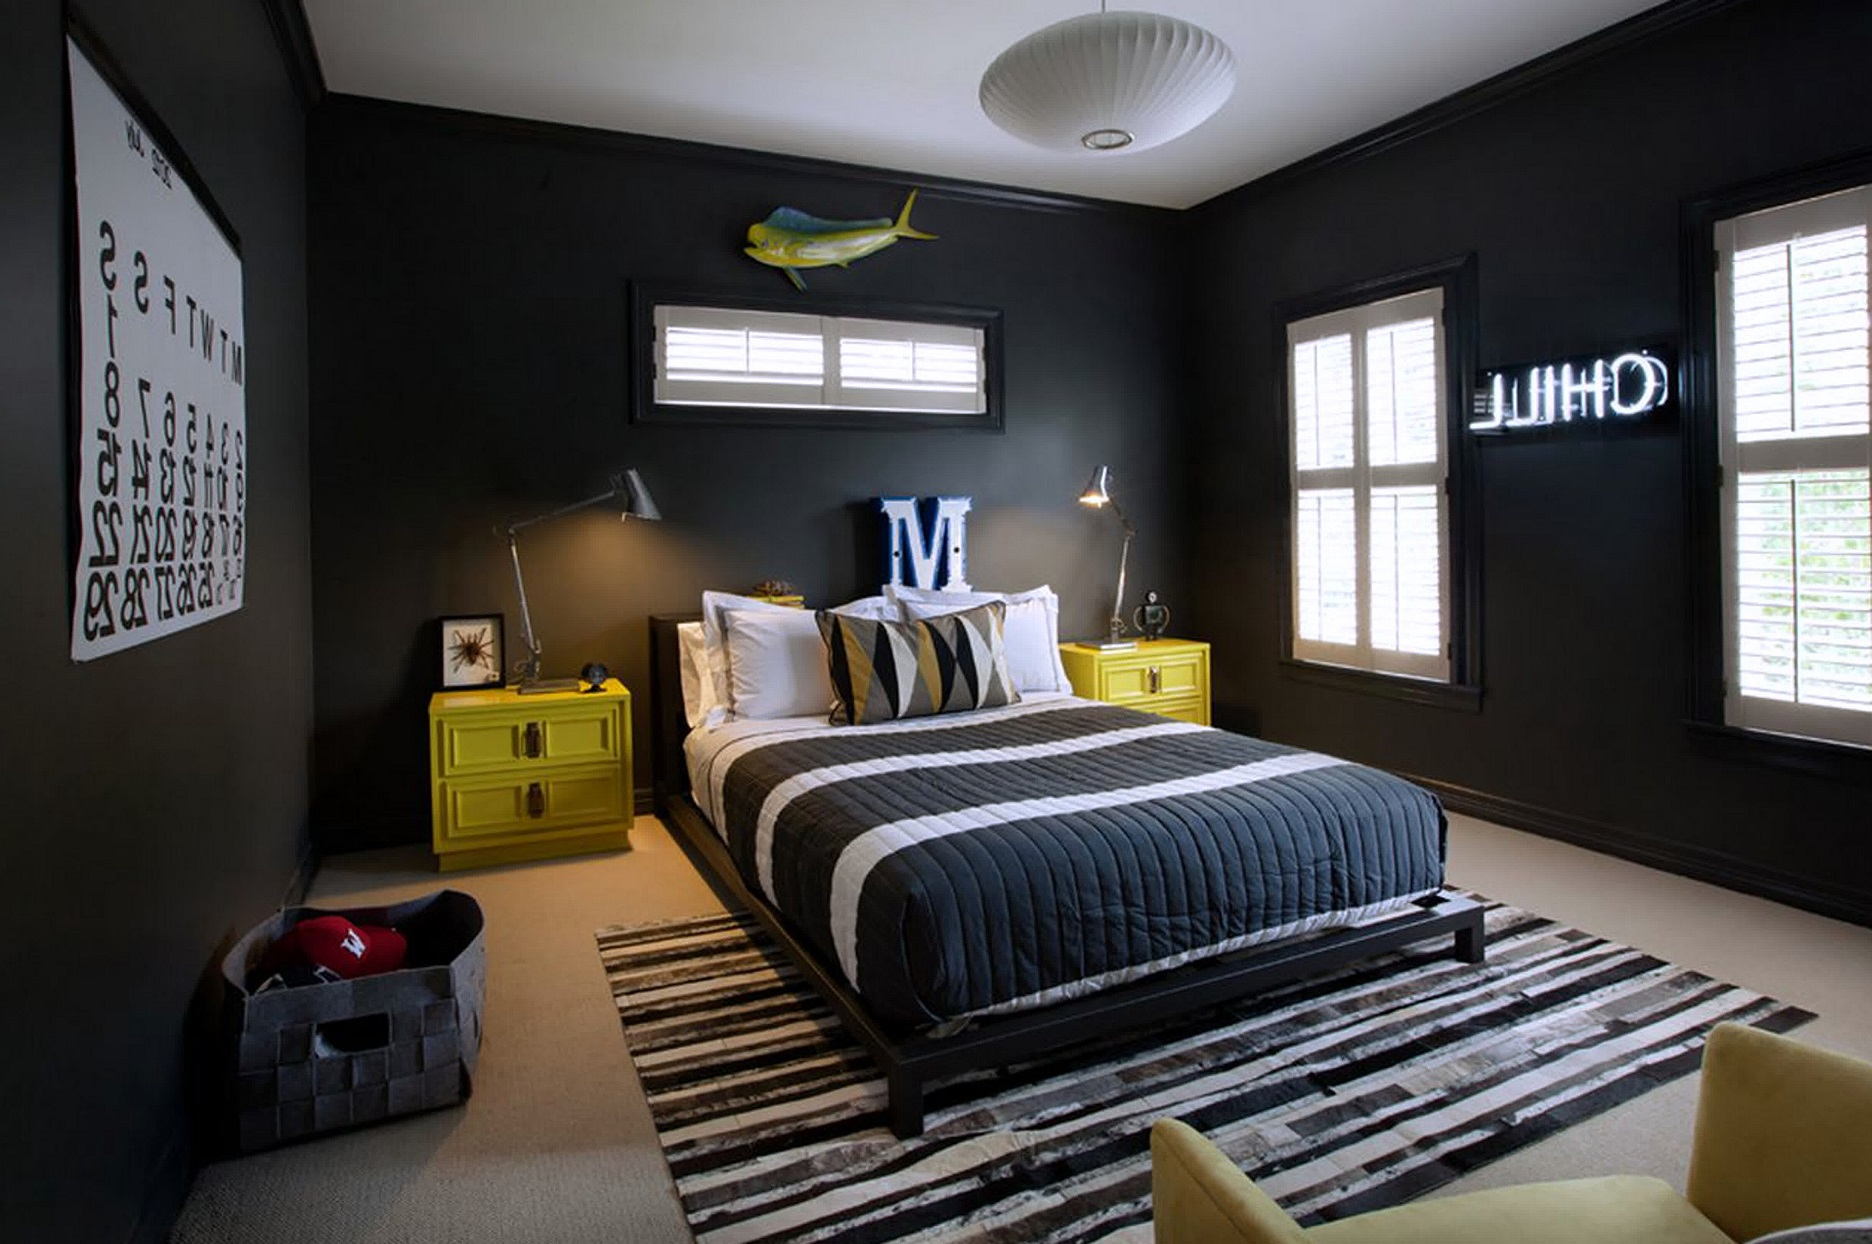 black-and-white-bedroom-ideas-14-stylish-peaceful-for-small-rooms-idolza